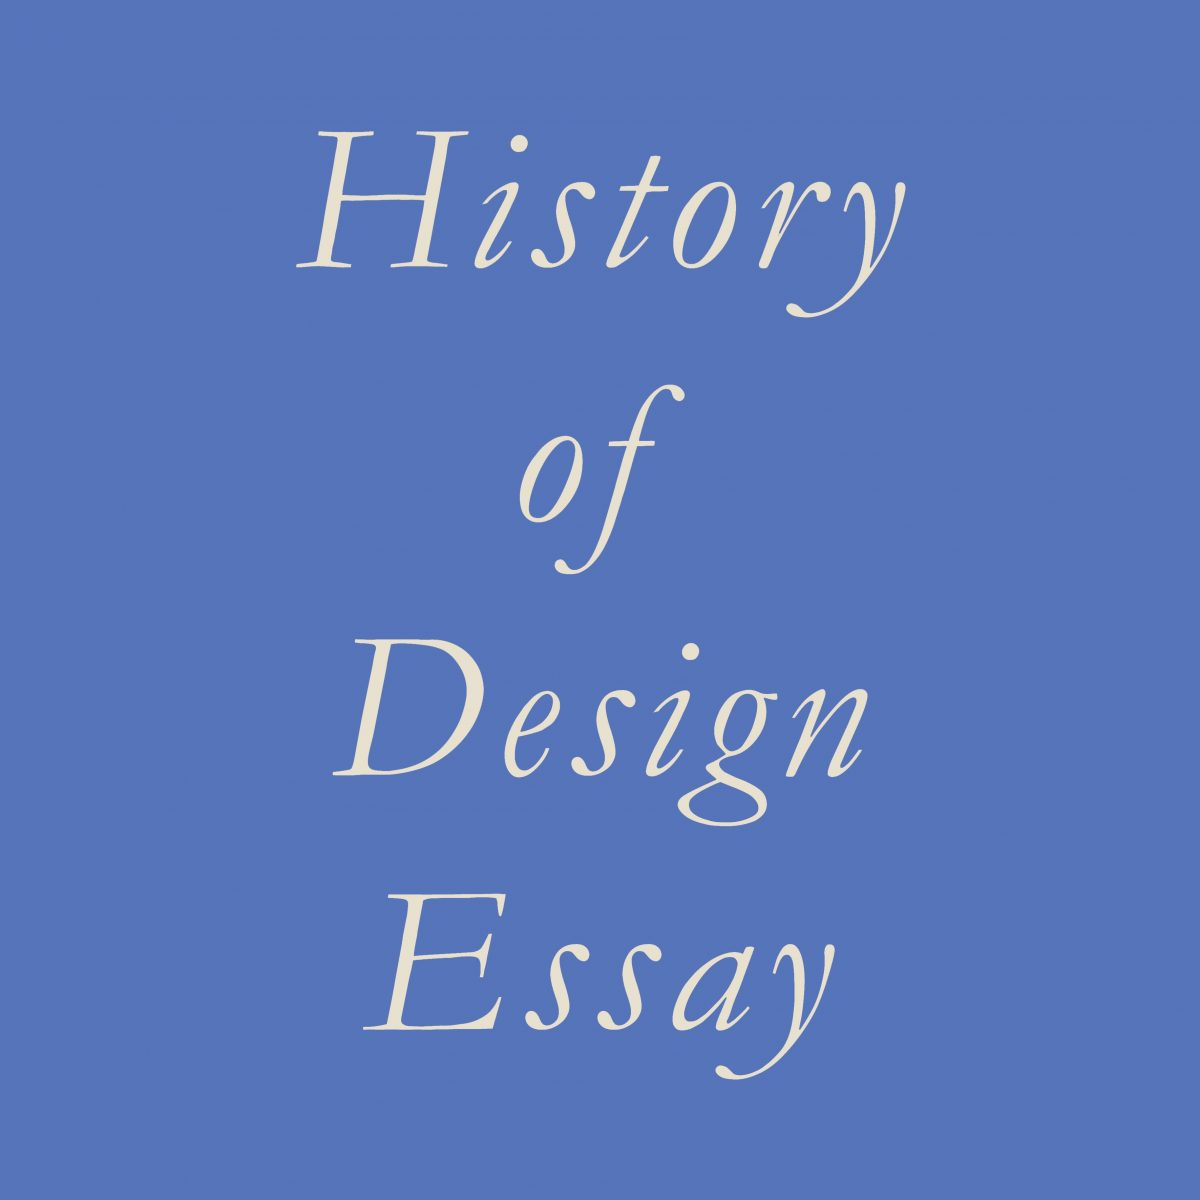 History of Design Essay